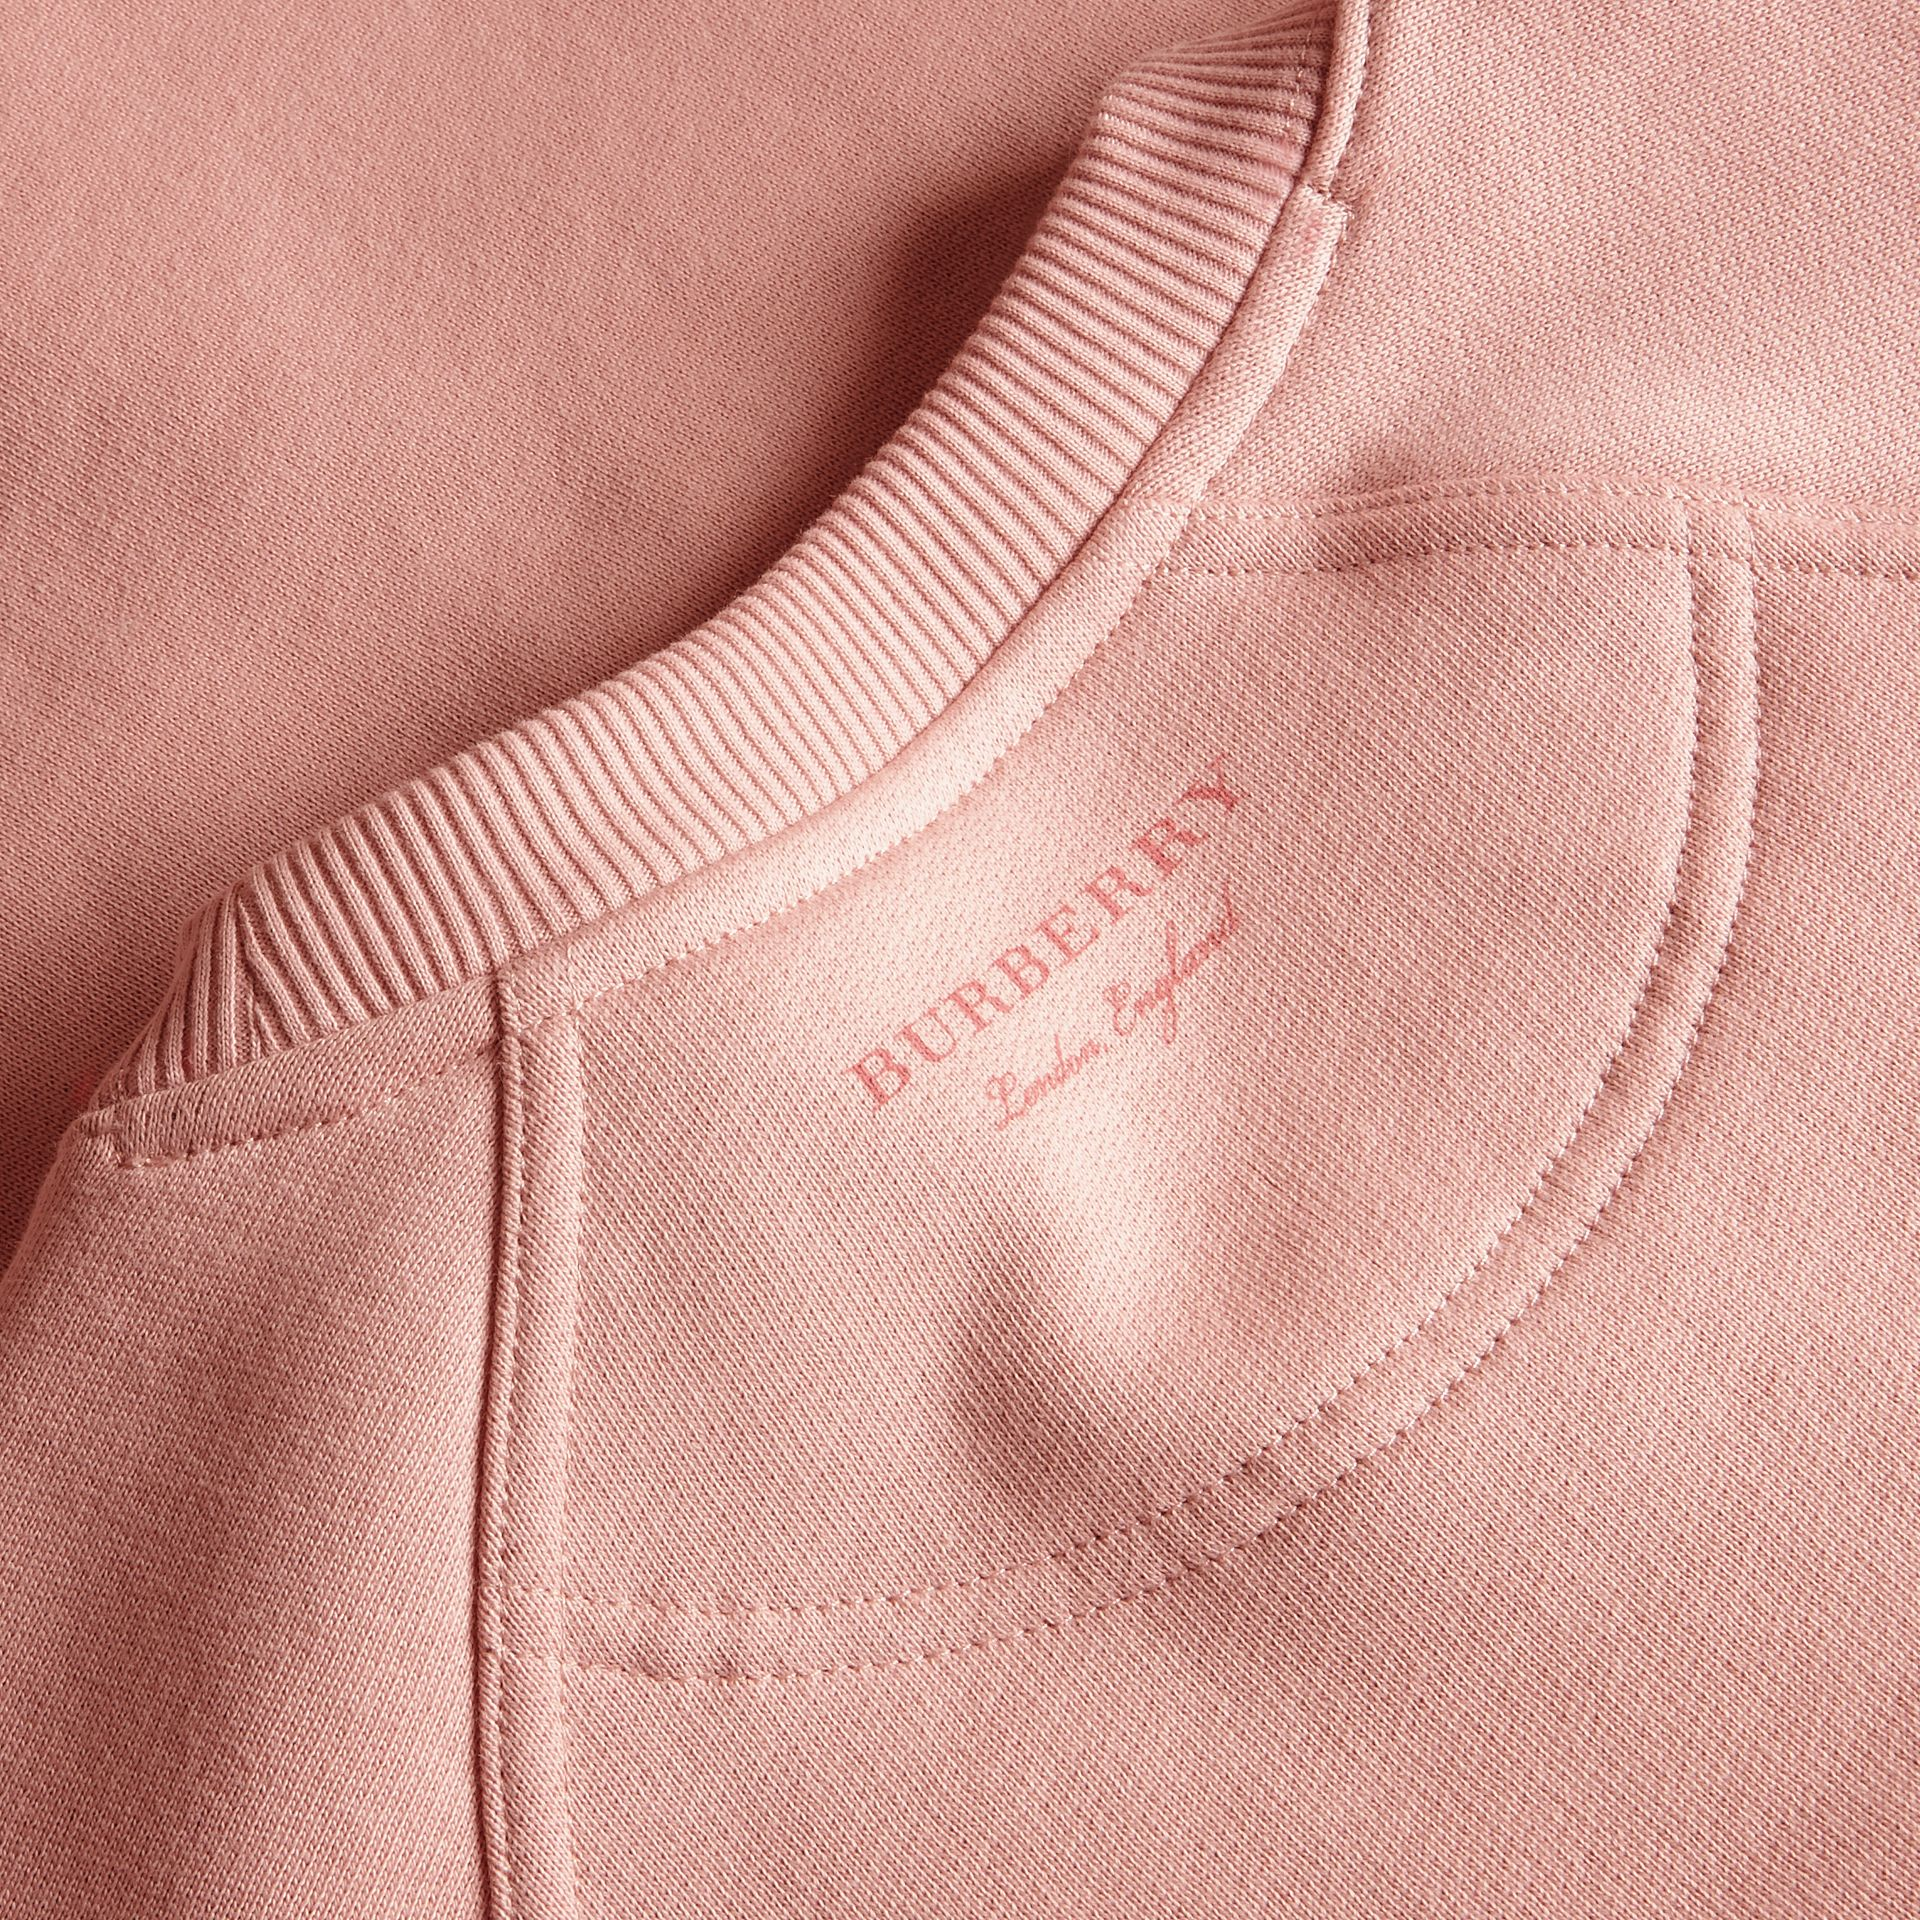 Sweat-shirt en jersey brossé avec manches cloches Rose Cendré - photo de la galerie 2